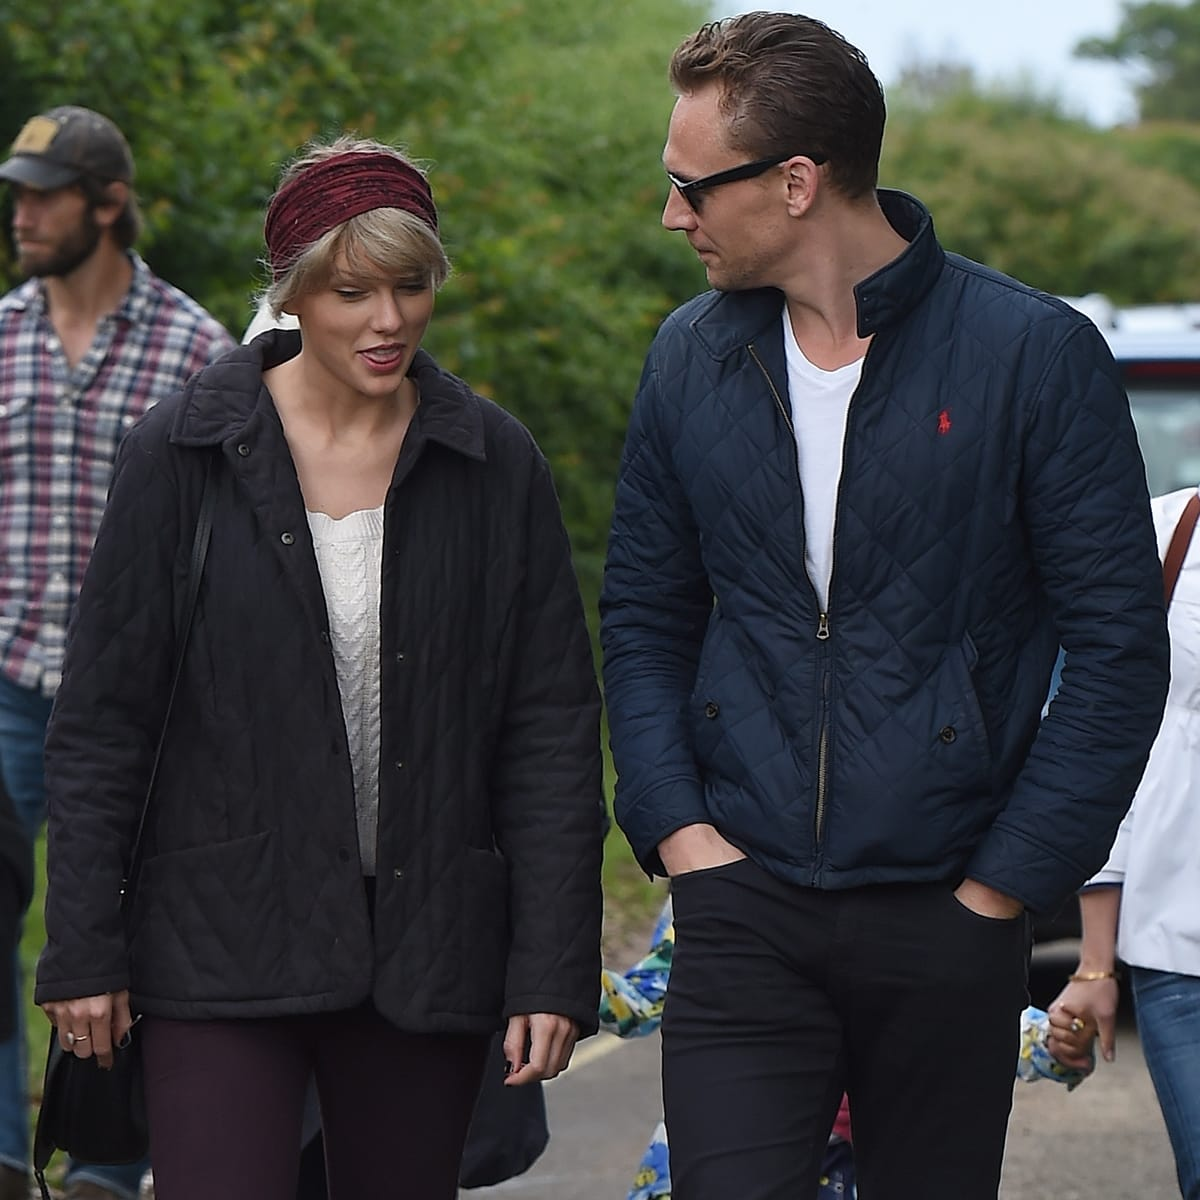 Tom Hiddleston and Taylor Swift surprised everyone when they confirmed they were dating